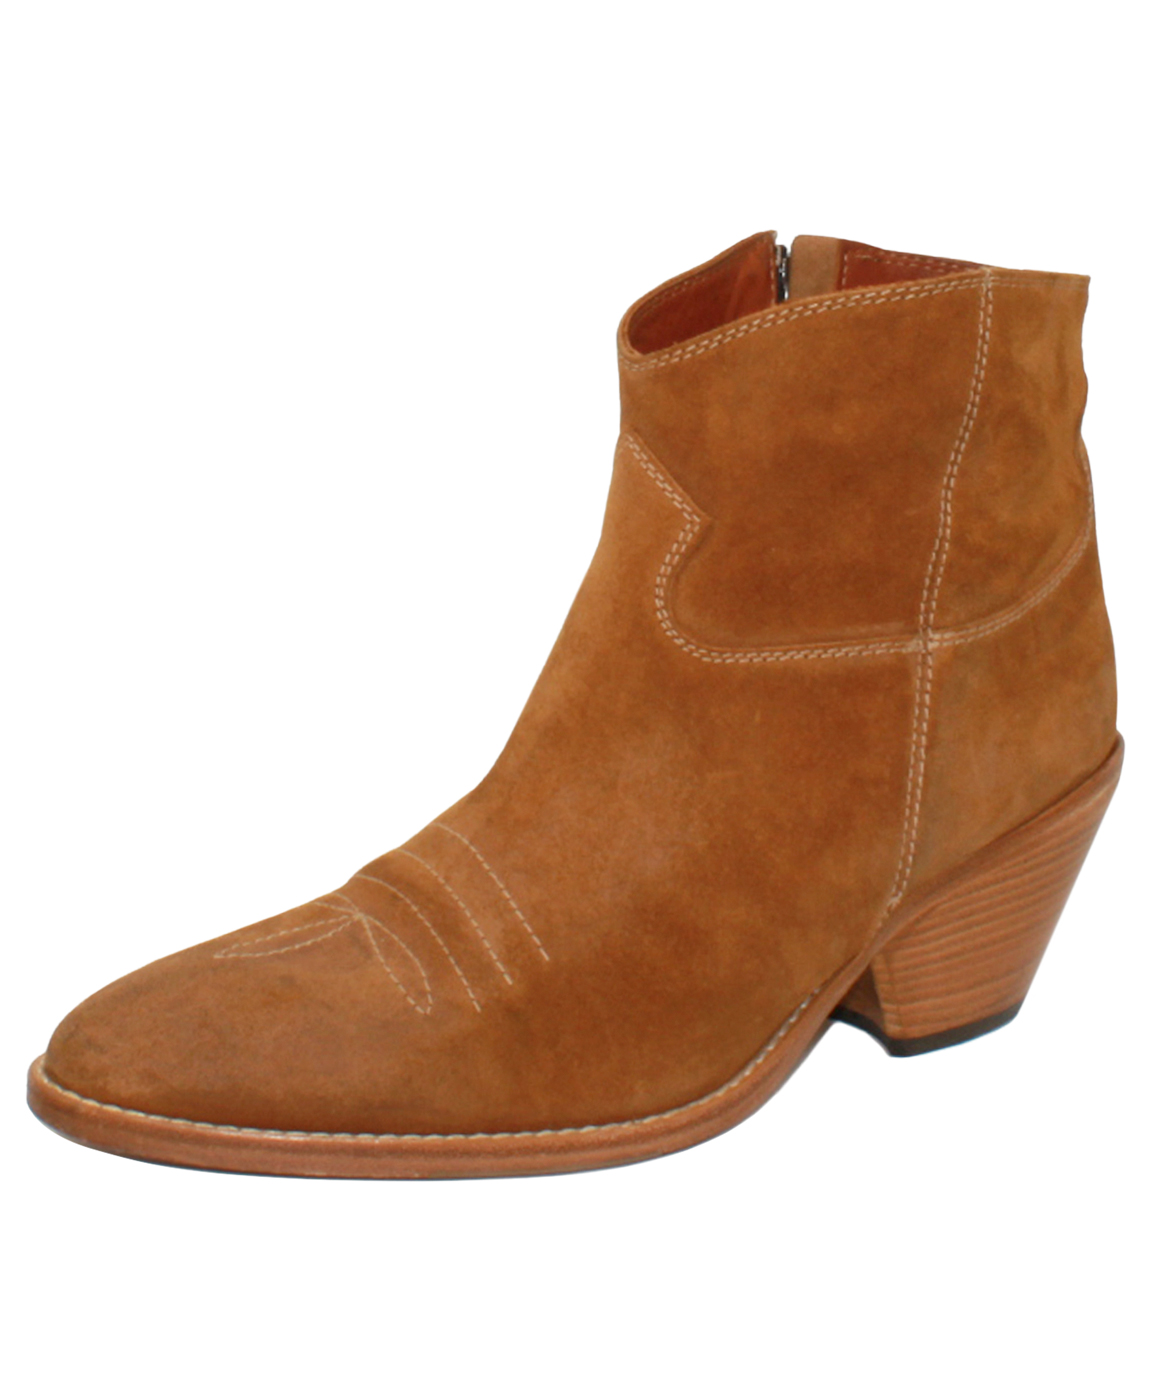 Original El Campero Italian leather boots and shoes